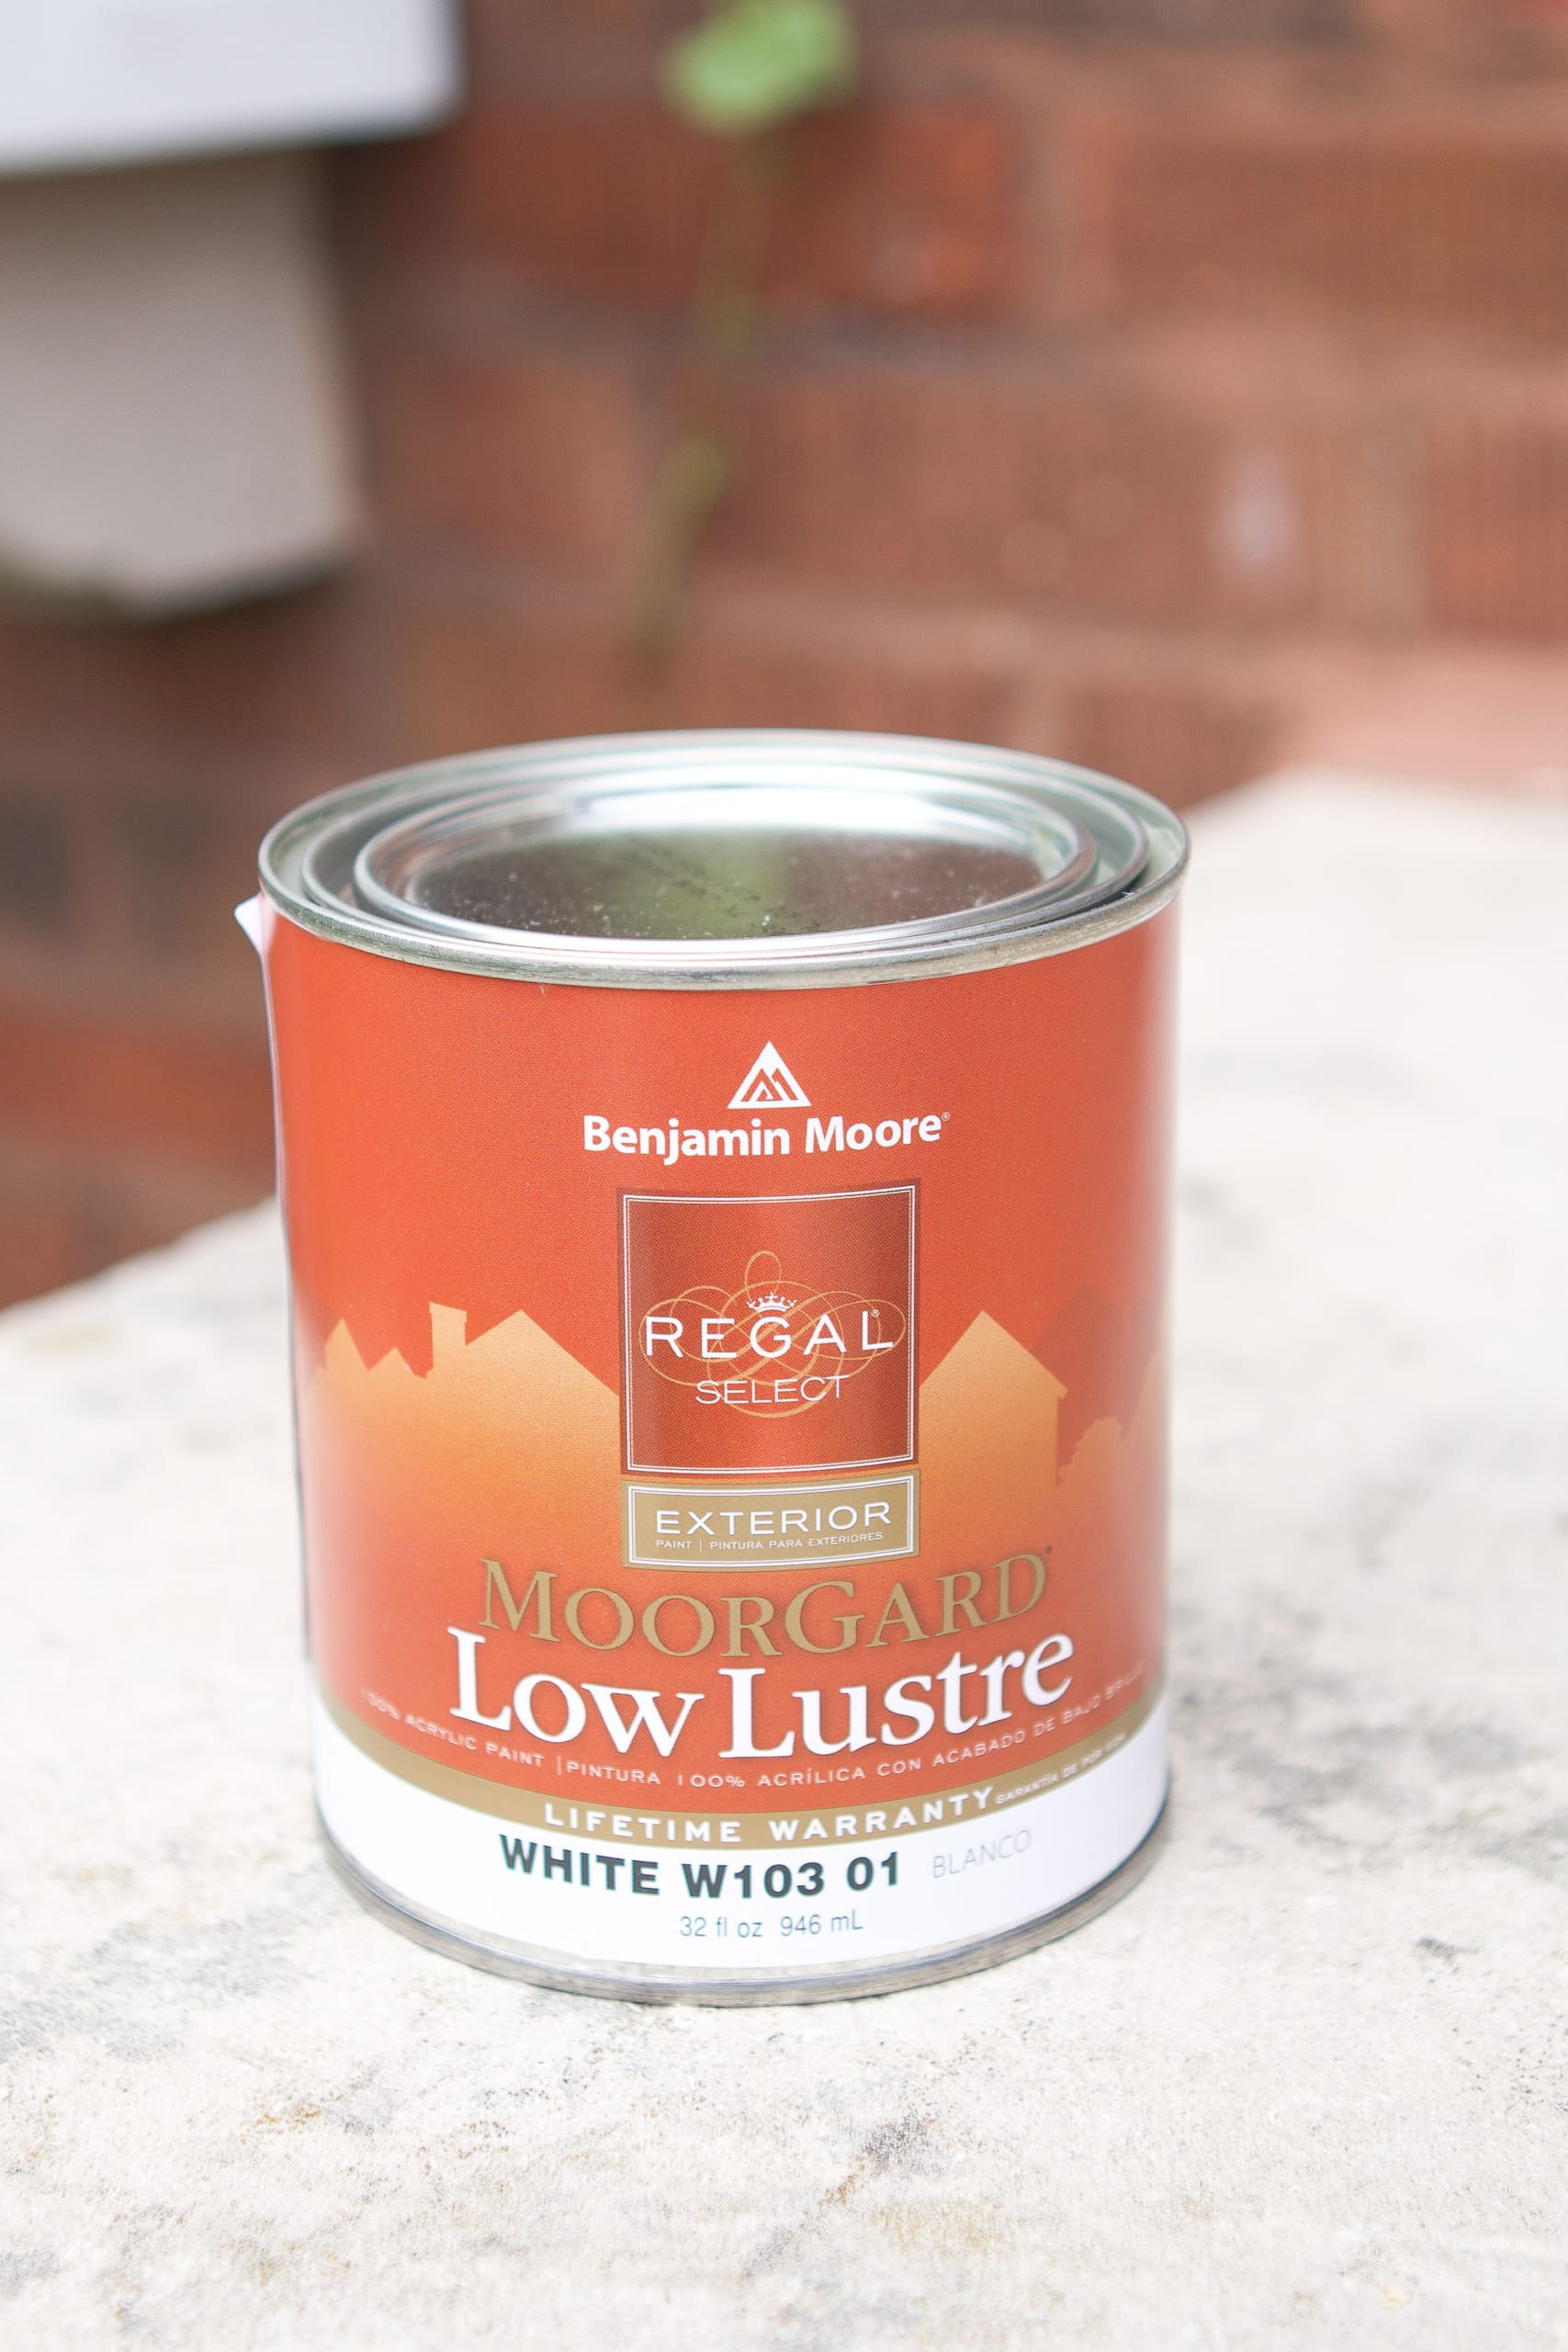 Low lustre paint from Benjamin Moore